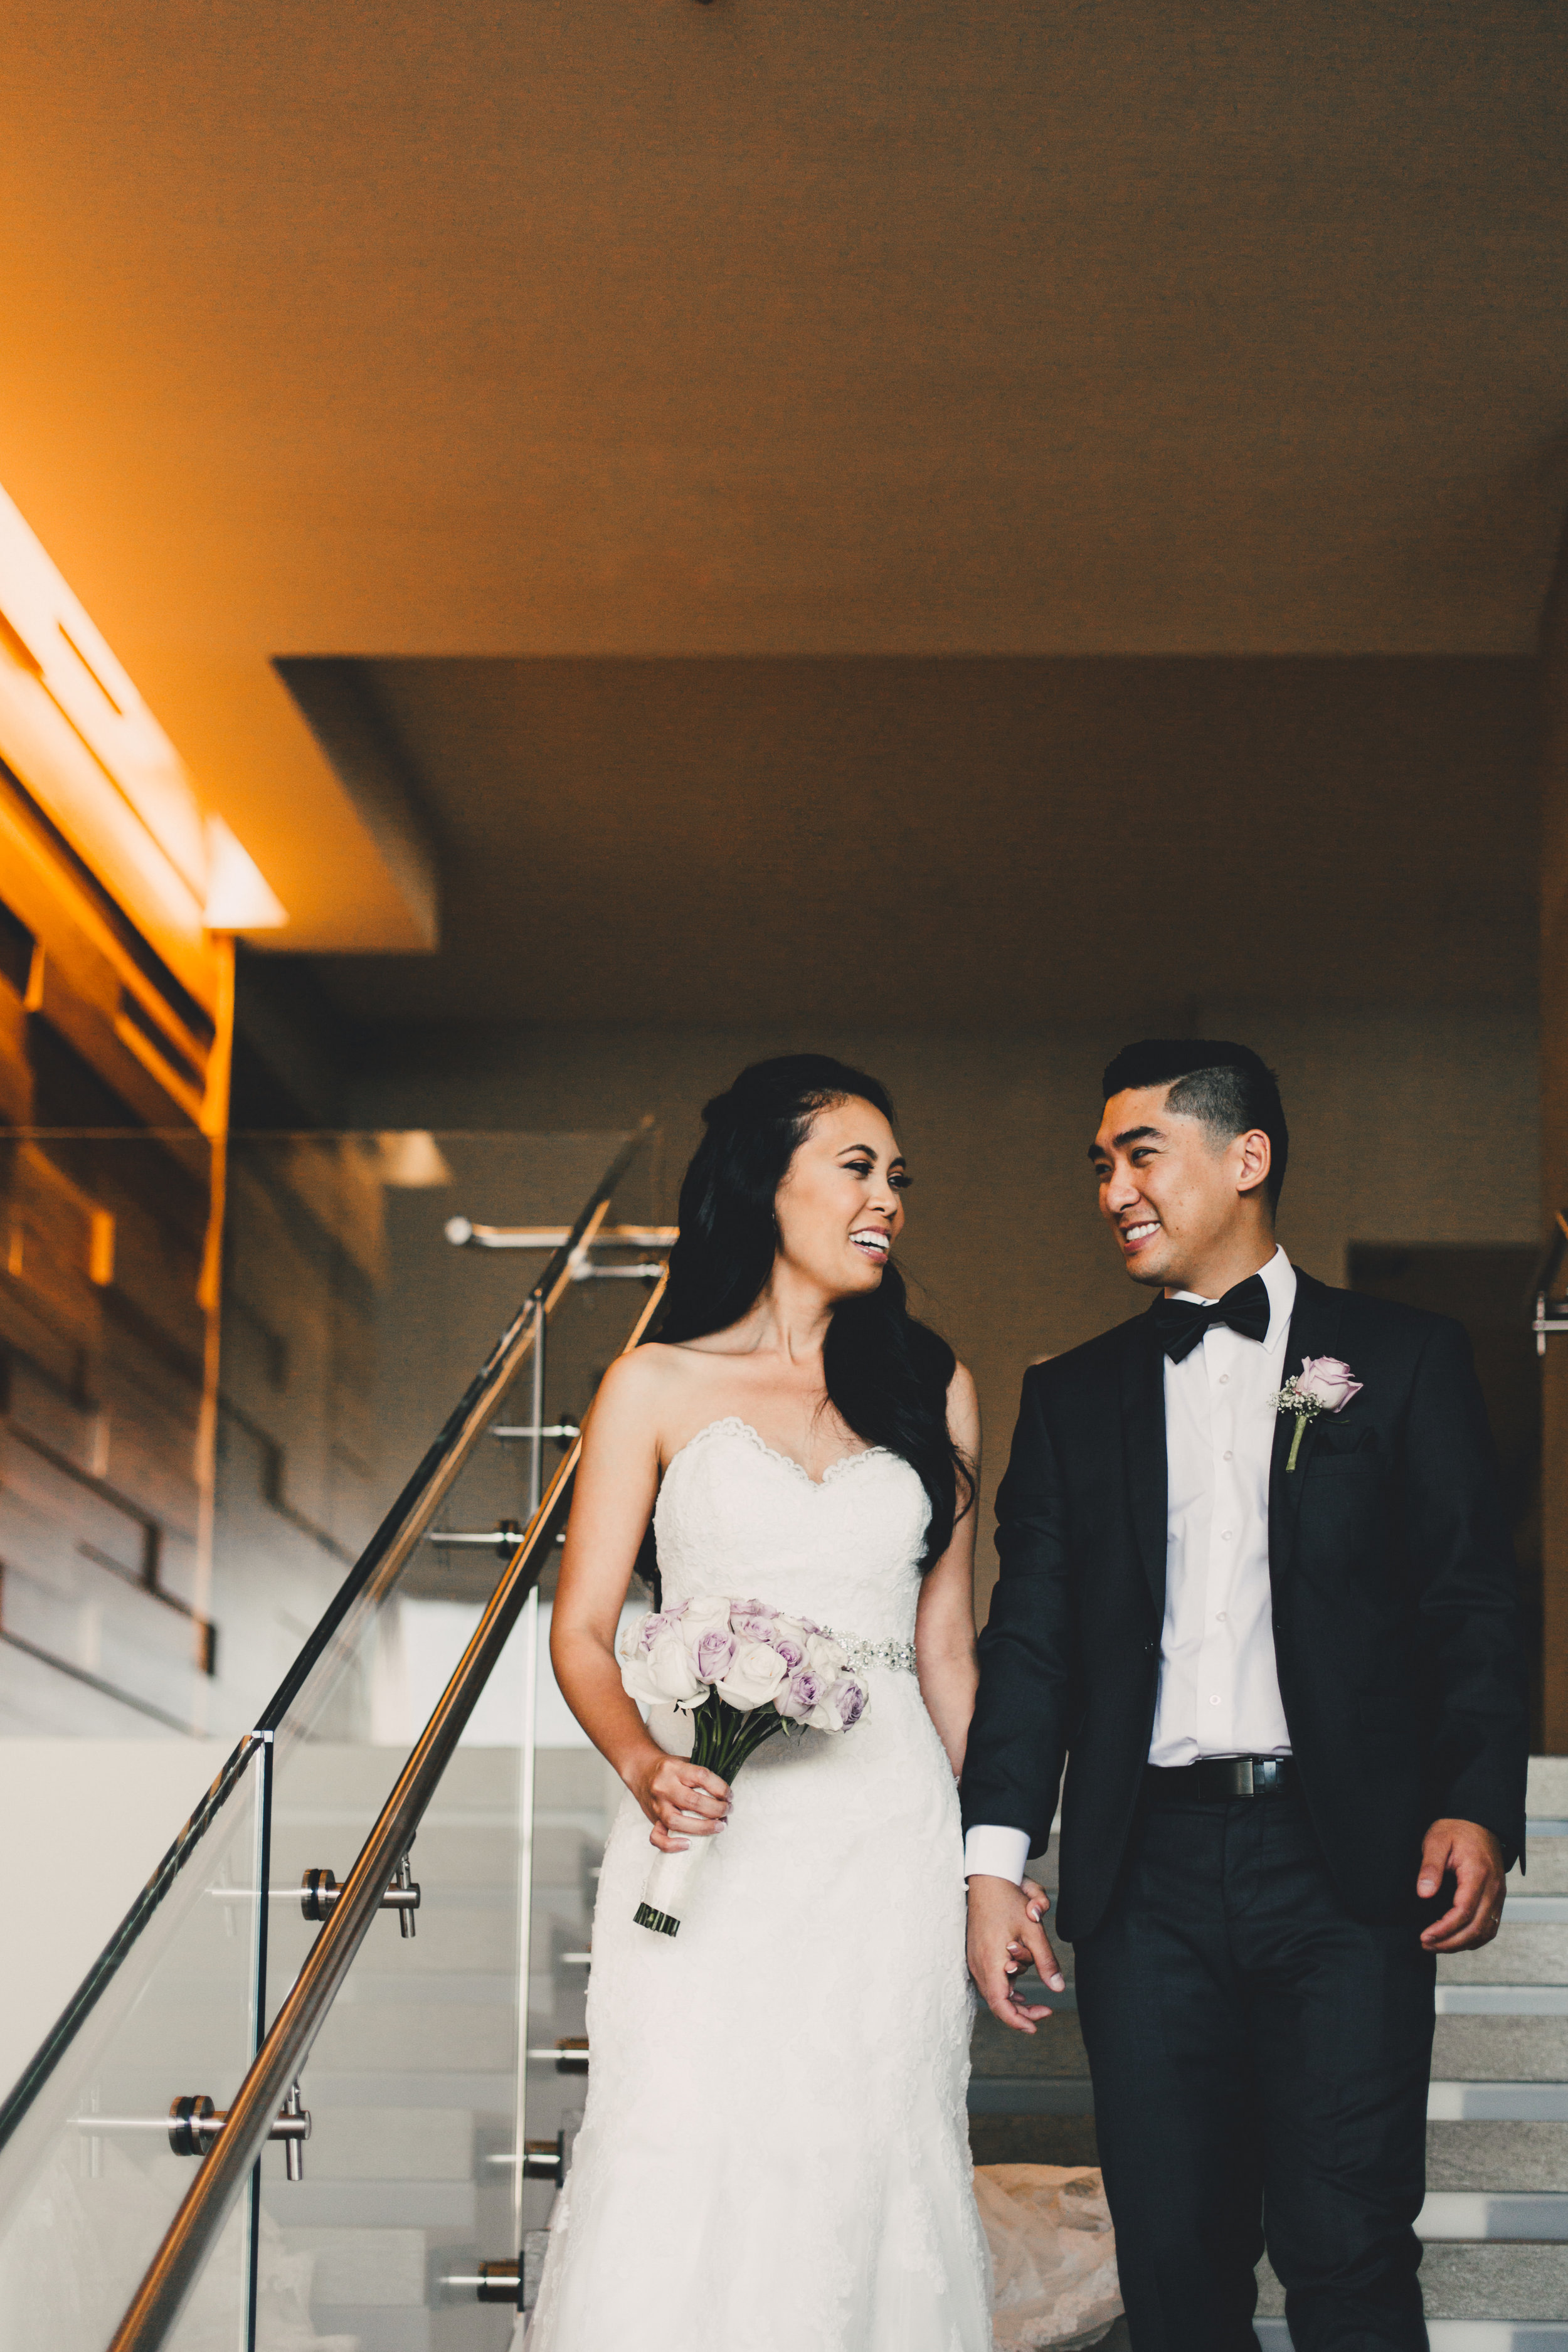 Madel + Andrew - Wedding, Natalie Griffo (116 of 169).jpg